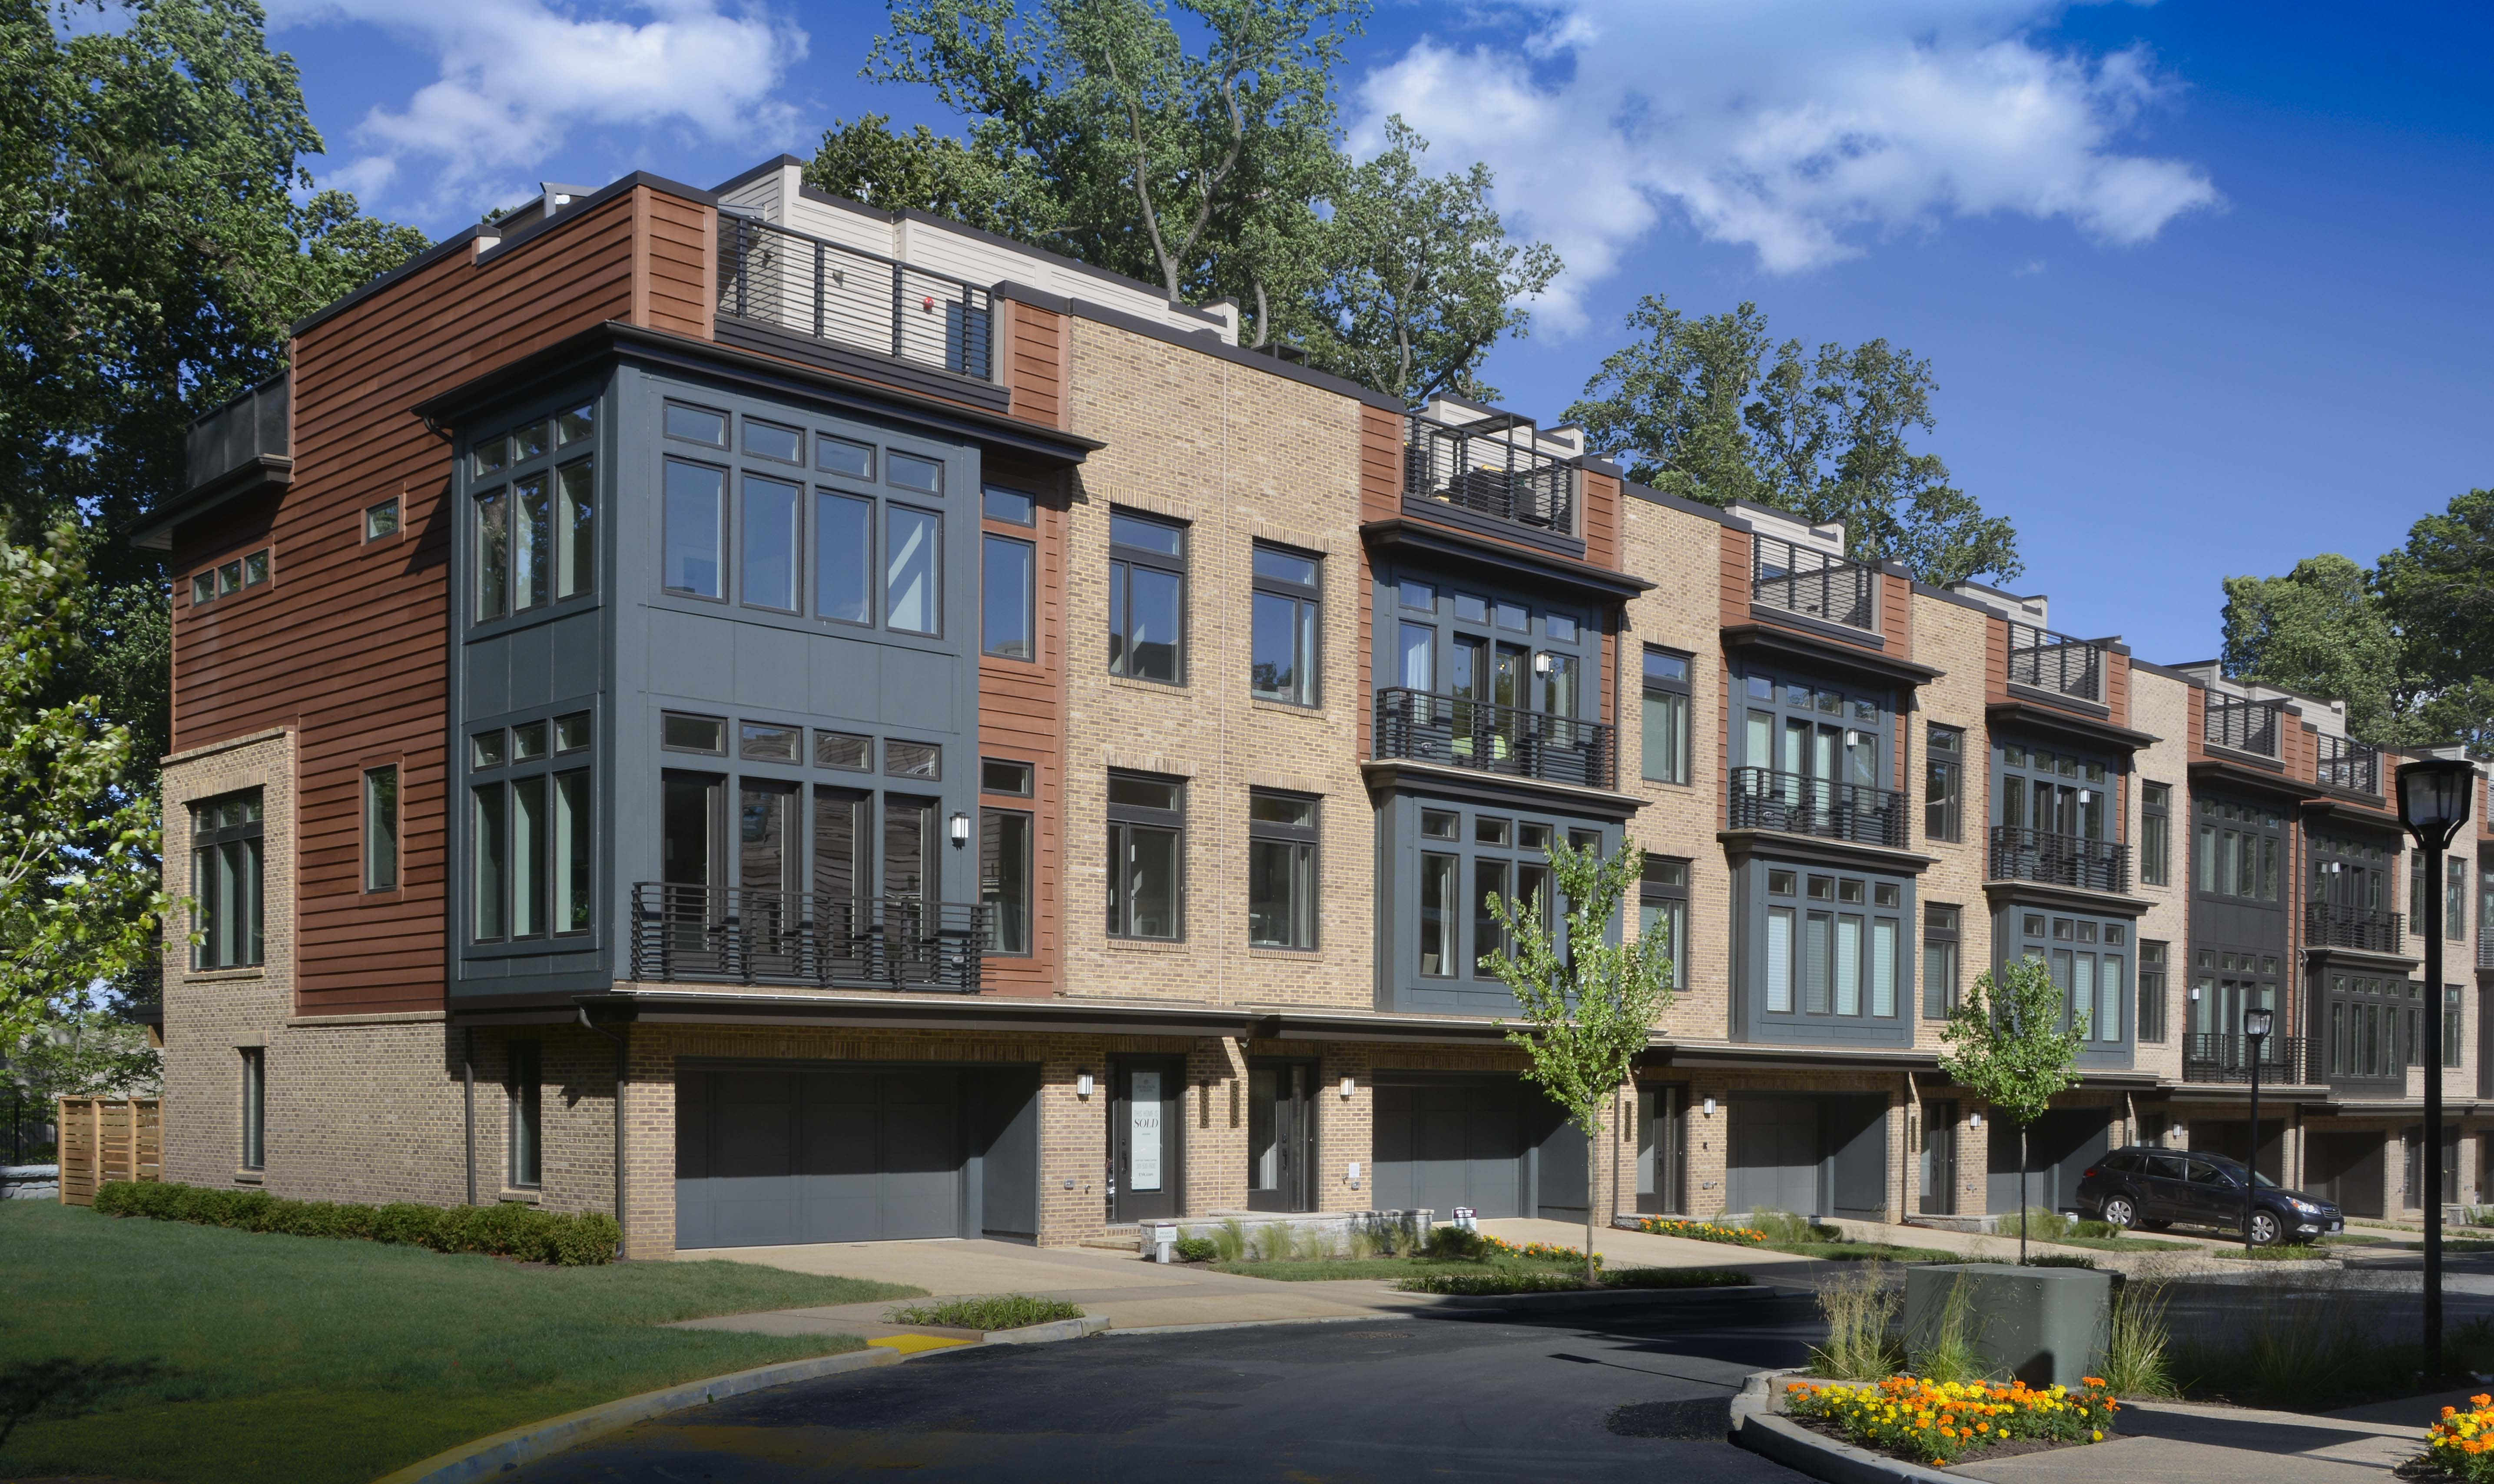 Single Family for Sale at Grosvenor Heights-The Harrison Townhome 5315 Merriam Street Bethesda, Maryland 20814 United States